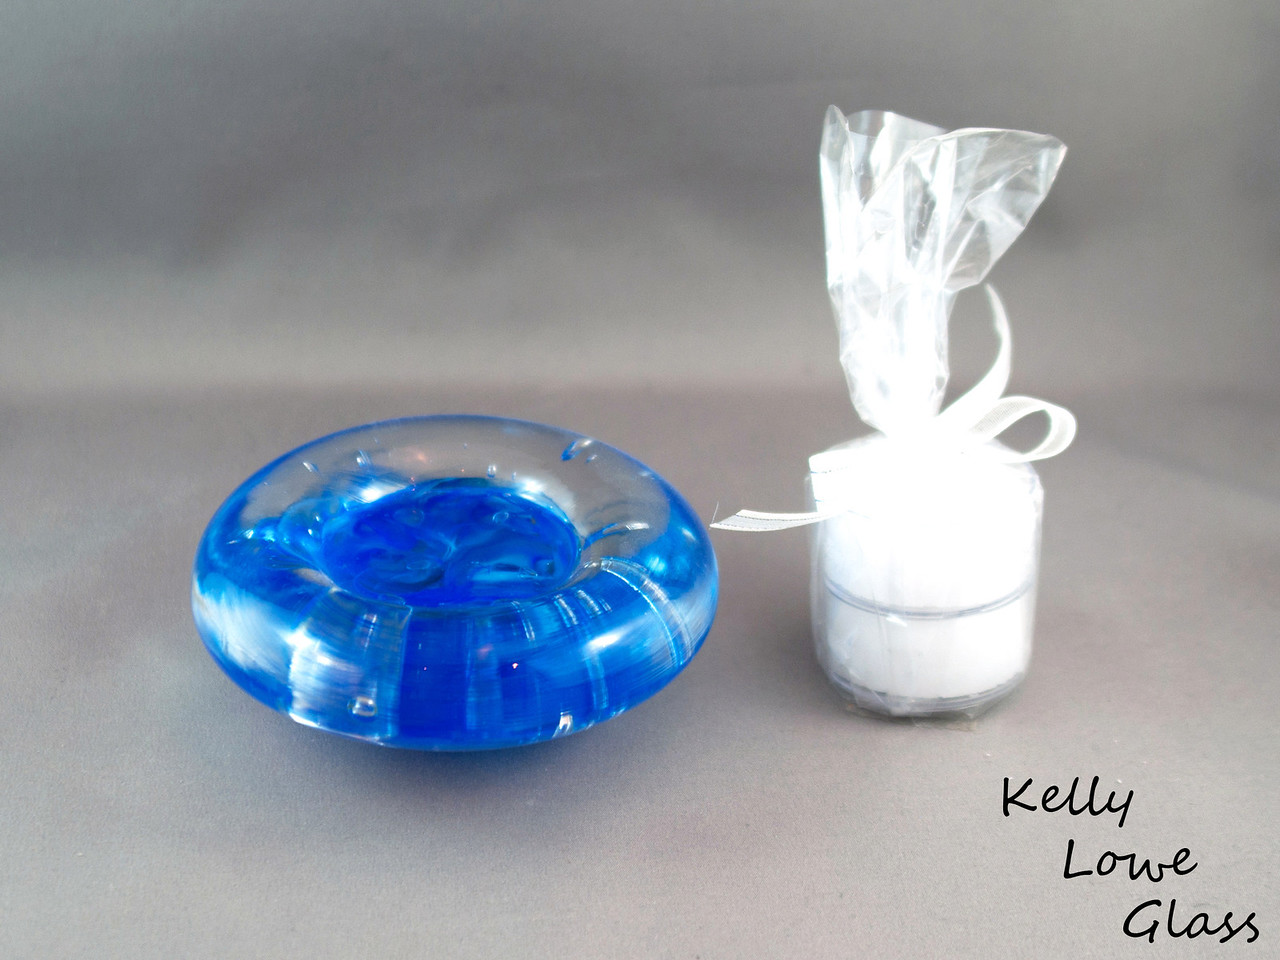 "Dark Blue Candle Holder  Dimensions:  Width: Approx 9 to 11.5cm (3.54"" - 4.53"") Height: Approx 3 to 3.5cm (1.18"" - 1.38"") Weight: Approx 422 to 576g. (0.93 - 1.27 lbs)  Please note: as each piece begins its life as molten glass and is blown/sculpted by hand into the final product, individual pieces might have slight variations in size and/or appearance. Please rest assured however that the standard of quality is quite high, and no substandard pieces will be sold."